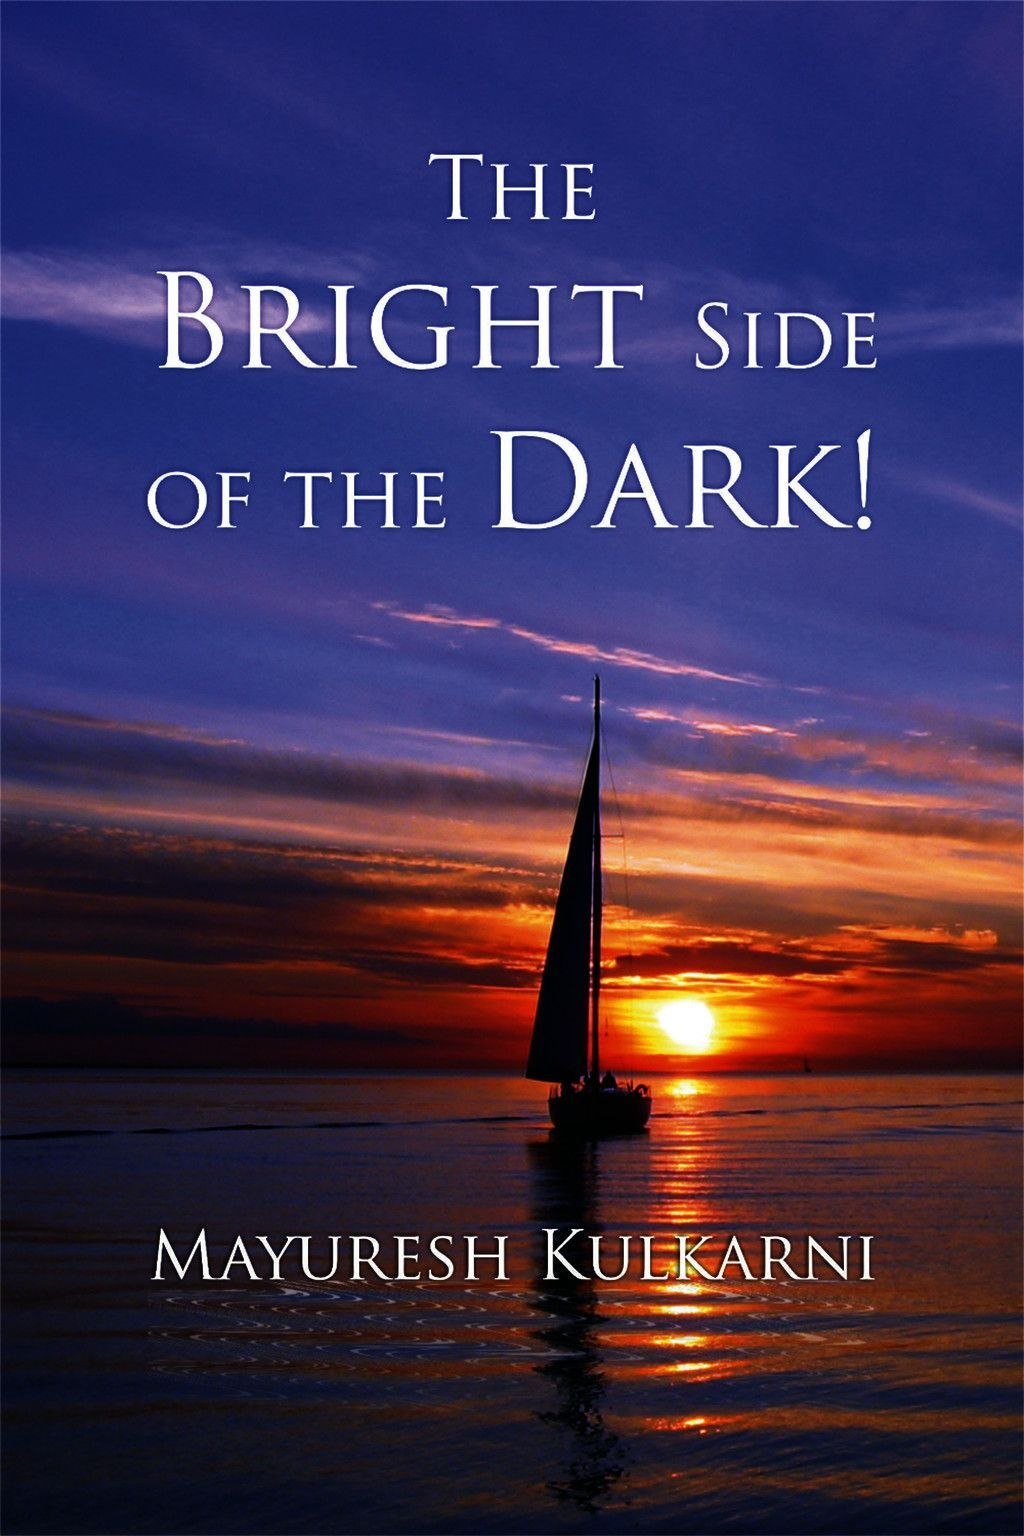 The Bright Side Of The Dark!